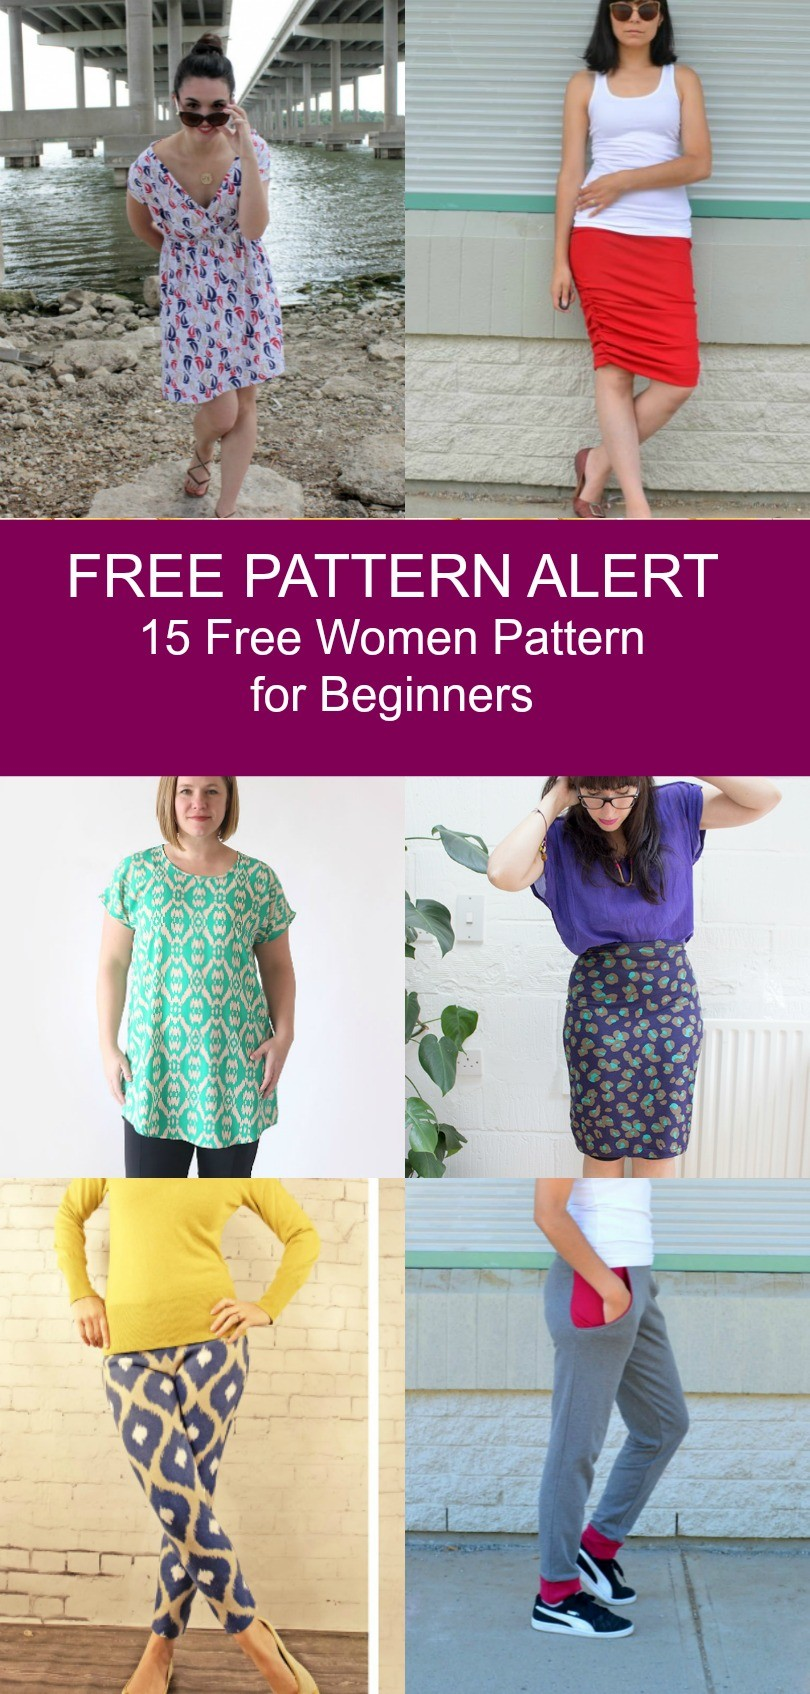 It is an image of Lively Printable Sewing Patterns for Beginners